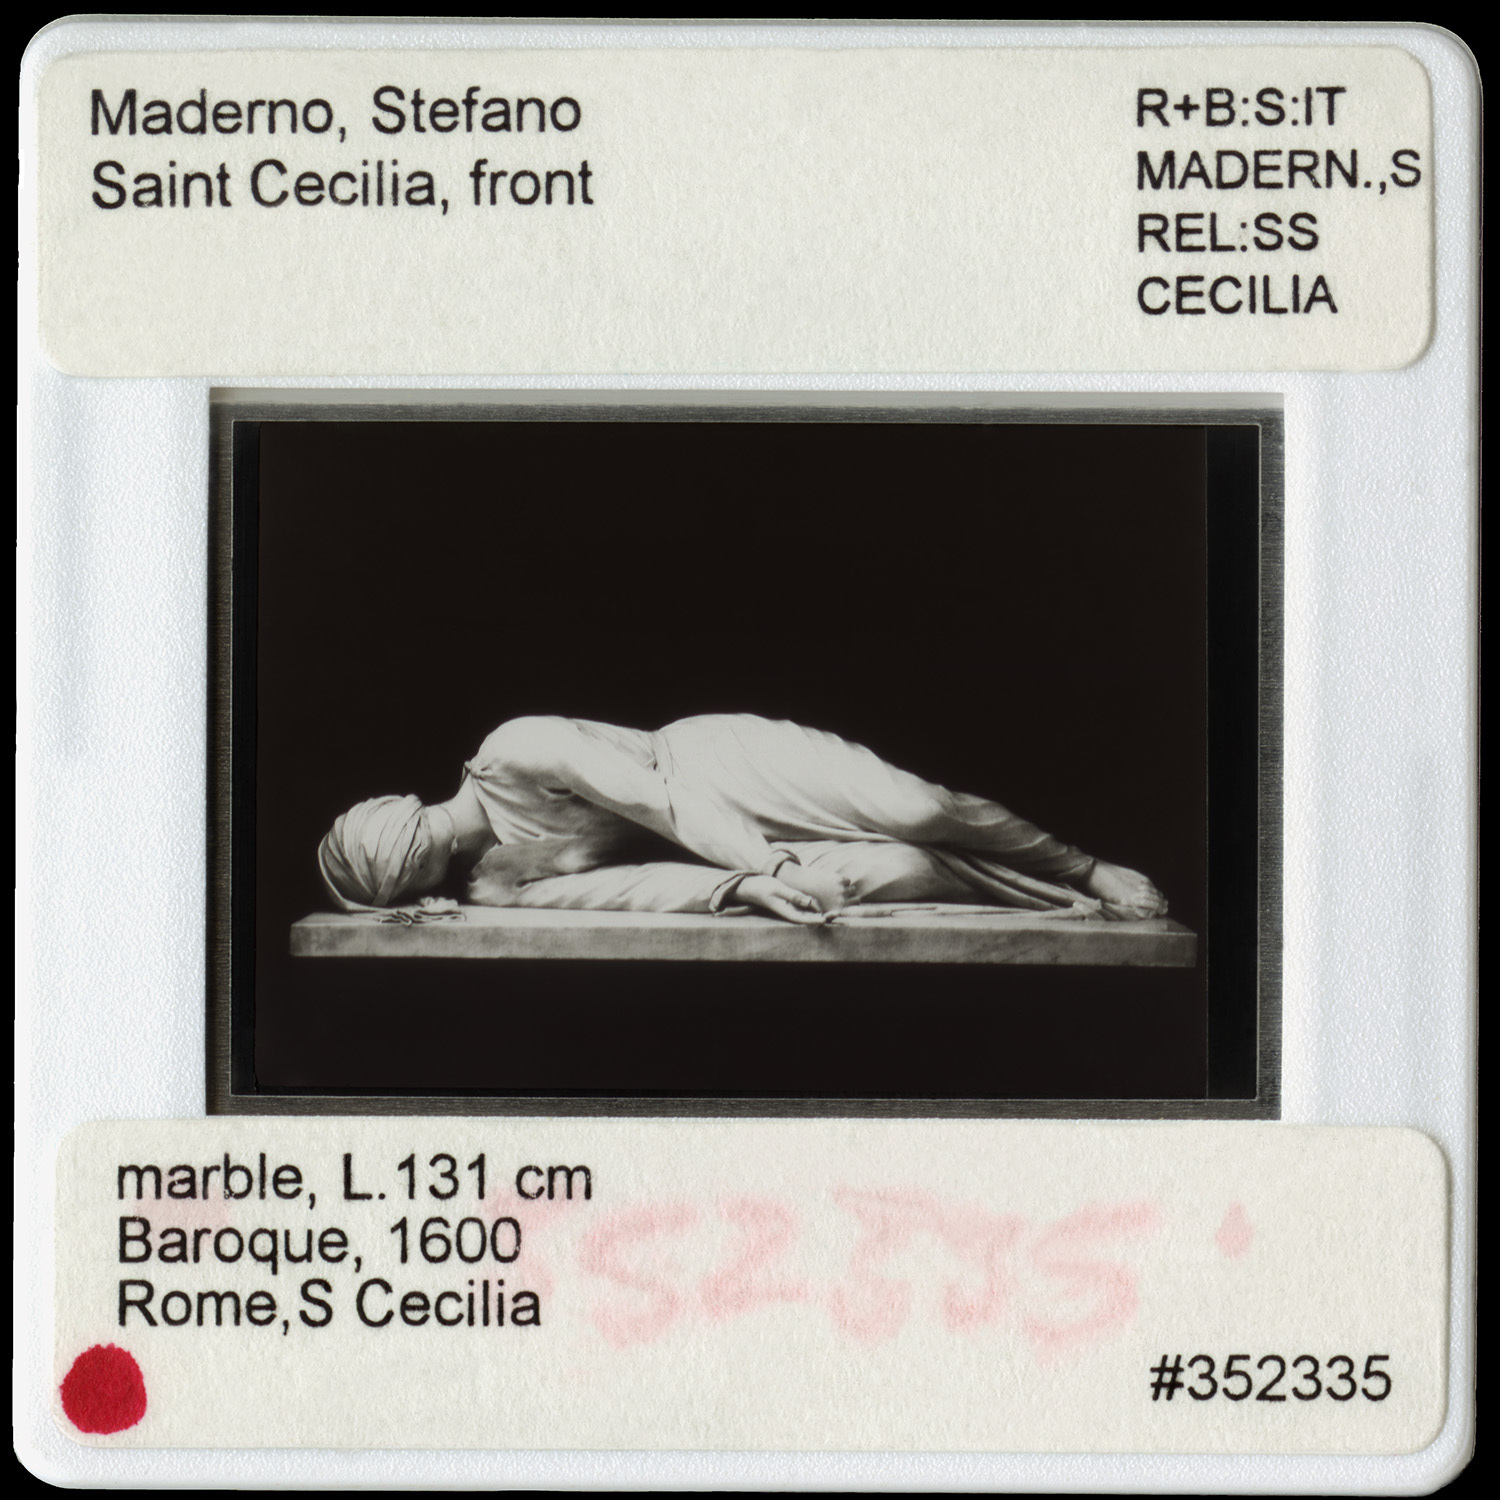 Vesna Pavlović, Maderno, Stefano, Saint Cecilia, Front, 40 x 40 in., Archival pigment print, 10 x 8 ft Impression IFR Silver fabric curtain, 2016